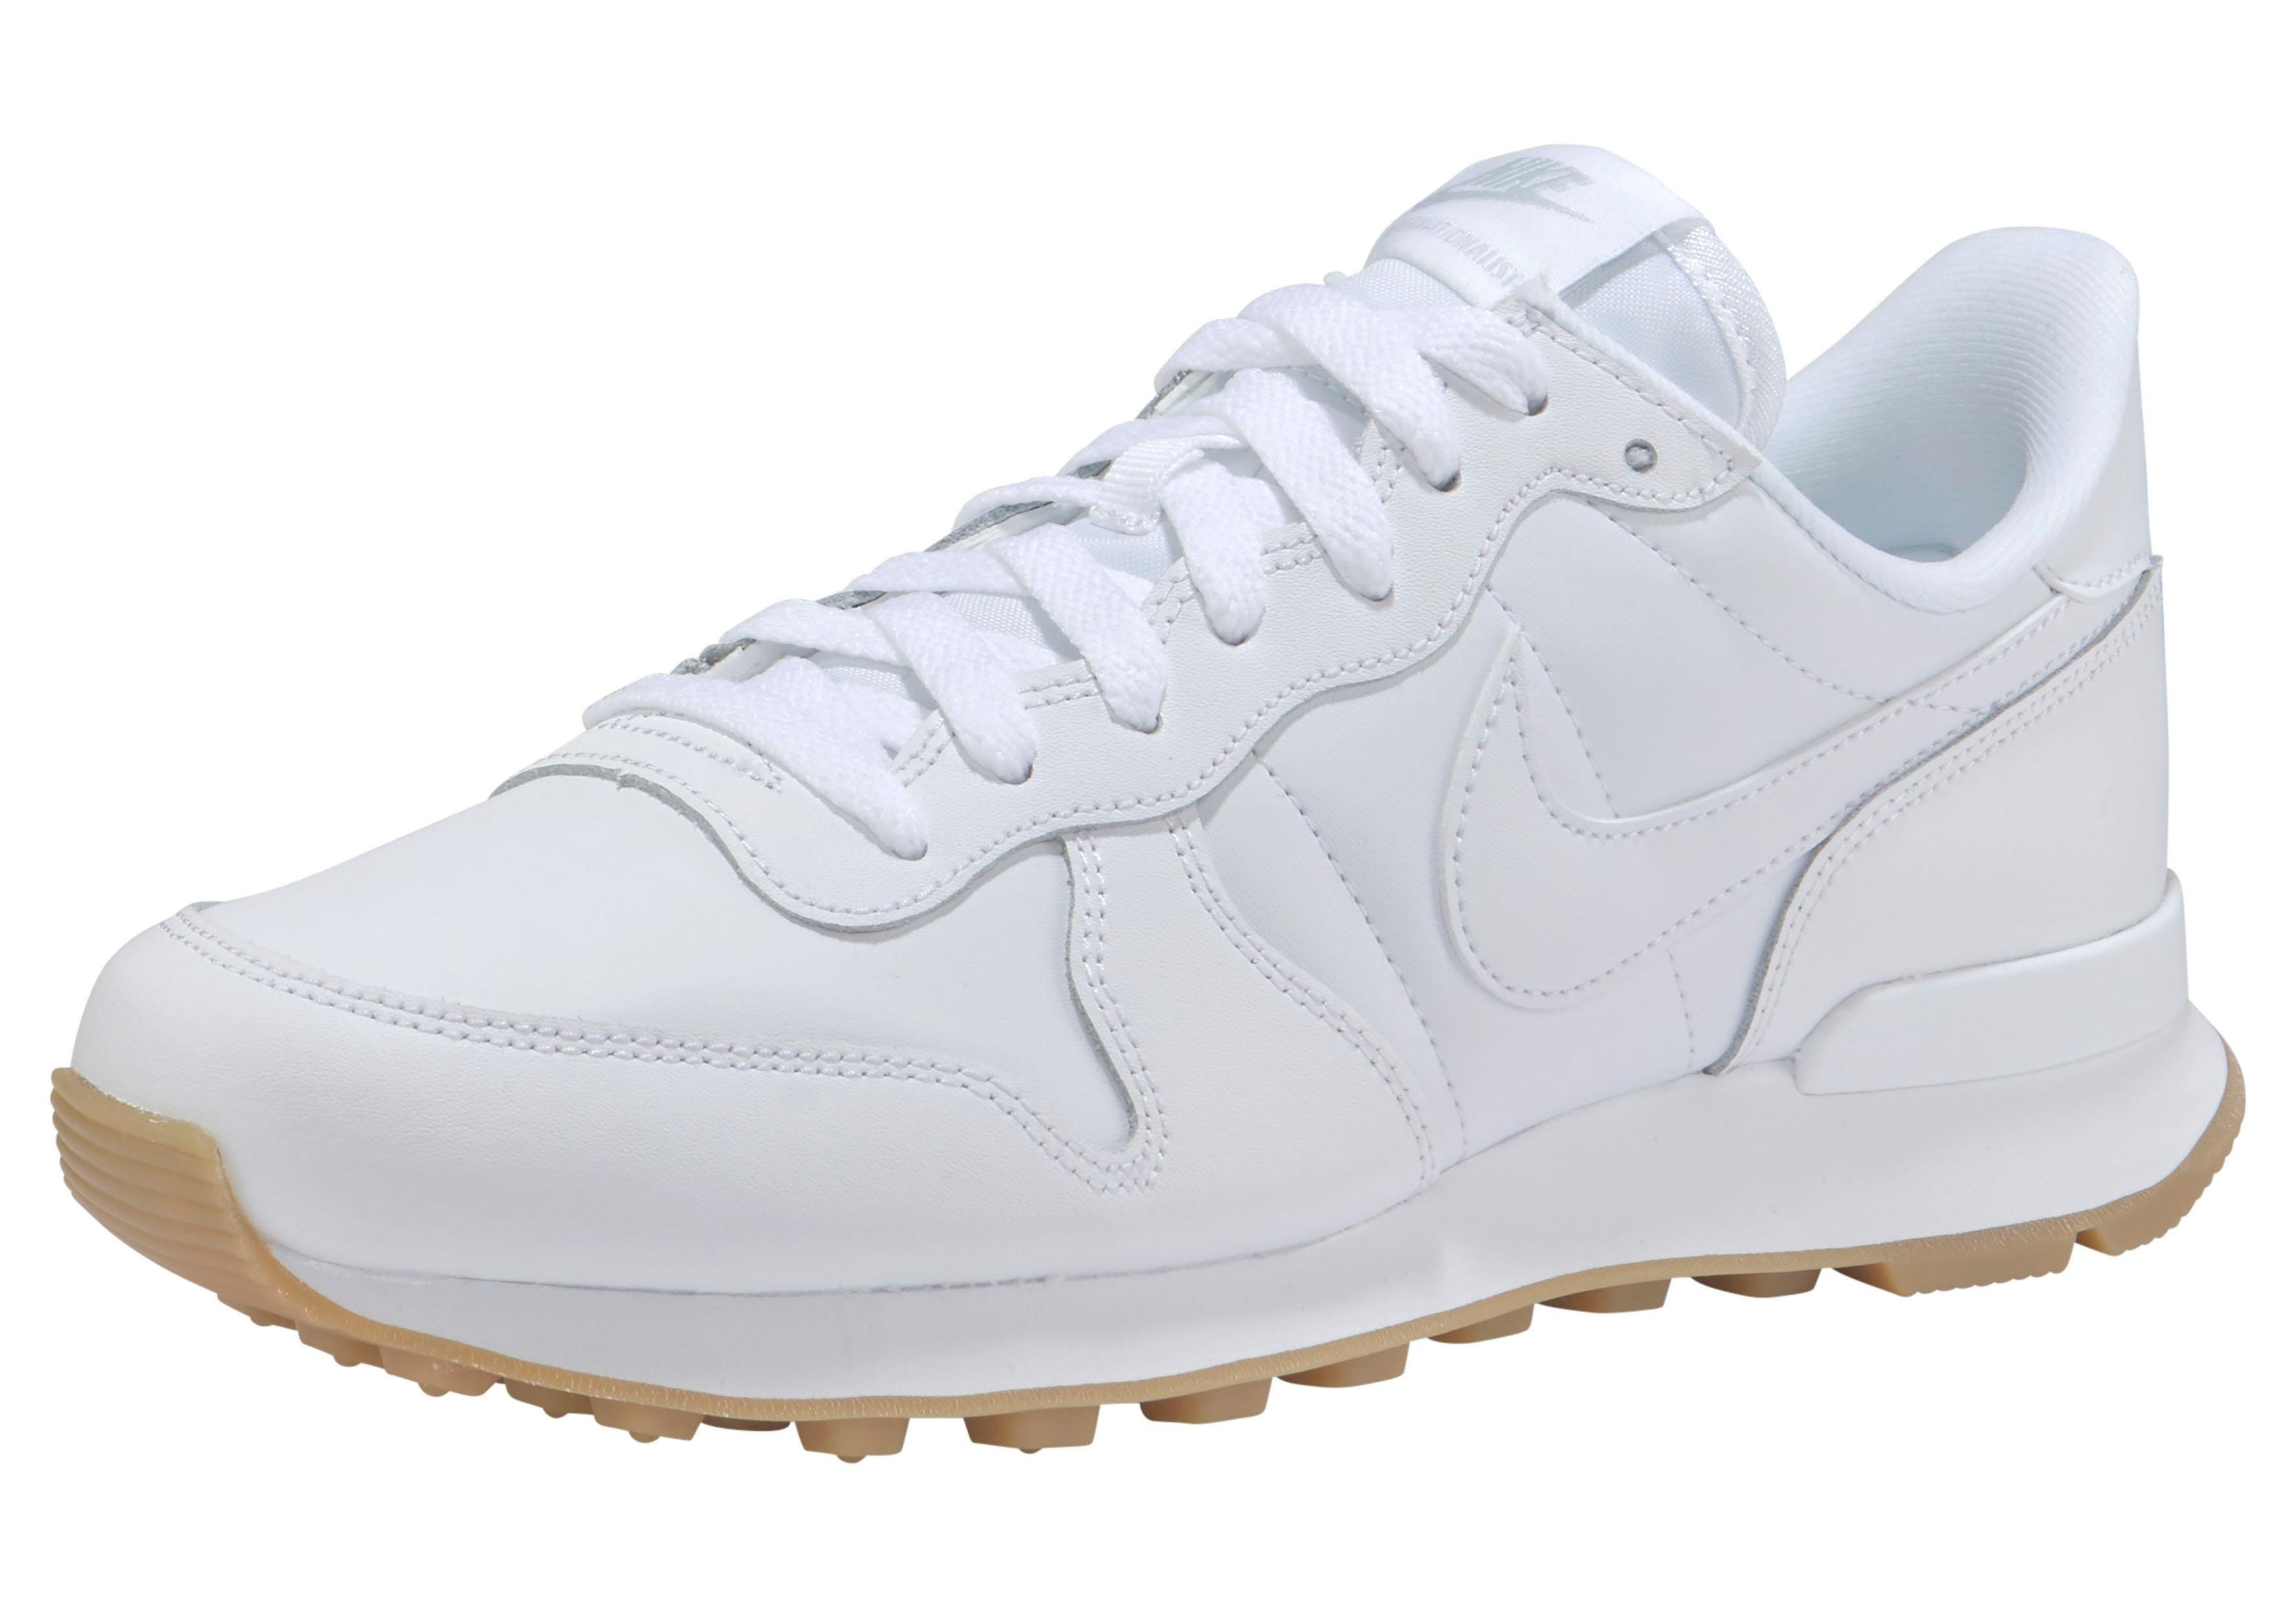 8d1b30404bf ... Nike Sportswear sneakers »Wmns Air Max Axis«, VANS Sneakers Old Skool,  Nike Sportswear sneakers »Wmns Air Max Axis«, adidas Originals sneakers »  ...